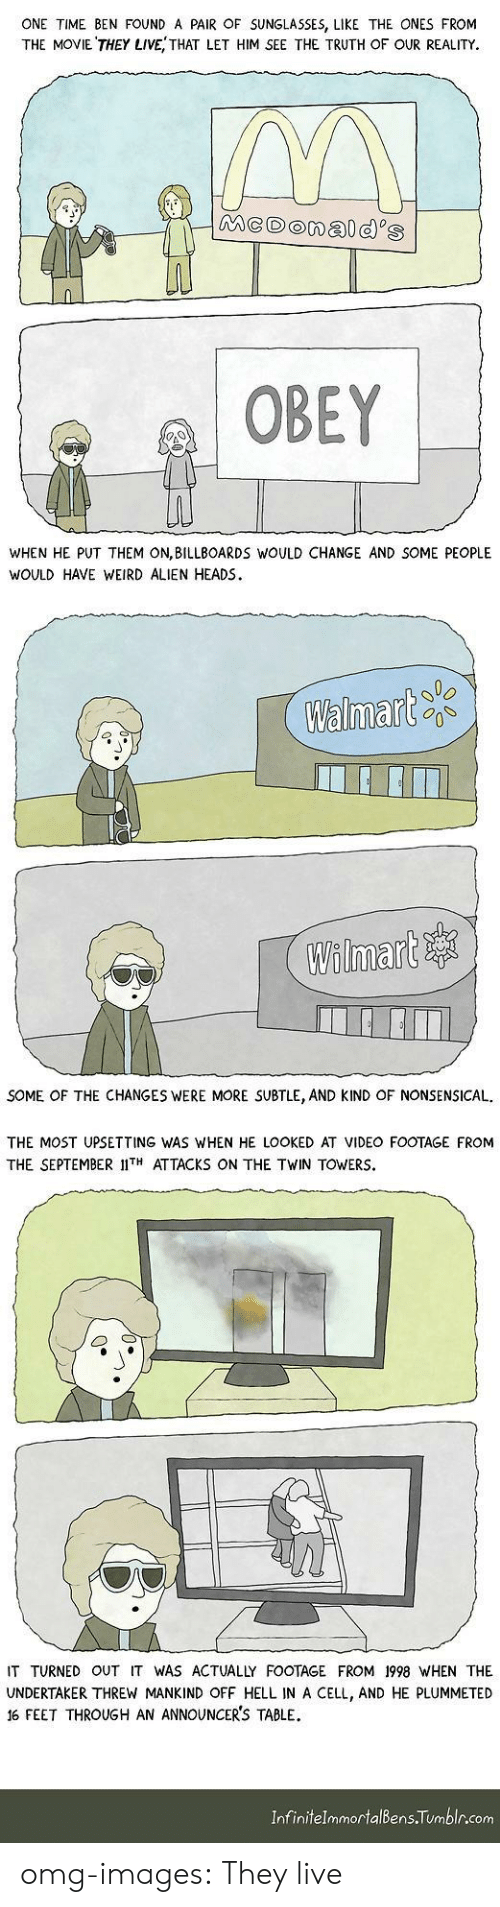 twin towers: ONE TIME BEN FOUND A PAIR OF SUNGLASSES, LIKE THE ONES FROM  THE MOVIE THEY LIVE, THAT LET HIM SEE THE TRUTH OF OUR REALITY.  OBEY  WHEN HE PUT THEM ON,BILLBOARDS WOULD CHANGE AND SOME PEOPLE  WOULD HAVE WEIRD ALIEN HEADS.  Walmart  Wilinnare寧  SOME OF THE CHANGES WERE MORE SUBTLE, AND KIND OF NONSENSICAL.  THE MOST UPSETTING WAS WHEN HE LOOKED AT VIDEO FOOTAGE FROM  THE SEPTEMBER IIT ATTACKS ON THE TWIN TOWERS.  IT TURNED OUT IT WAS ACTUALLY FOOTAGE FROM 1998 WHEN THE  UNDERTAKER THREW MANKIND OFF HELL IN A CELL, AND HE PLUMMETED  16 FEET THROUGH AN ANNOUNCER'S TABLE  InfinitelmmortalBens Tumblr.com omg-images:  They live